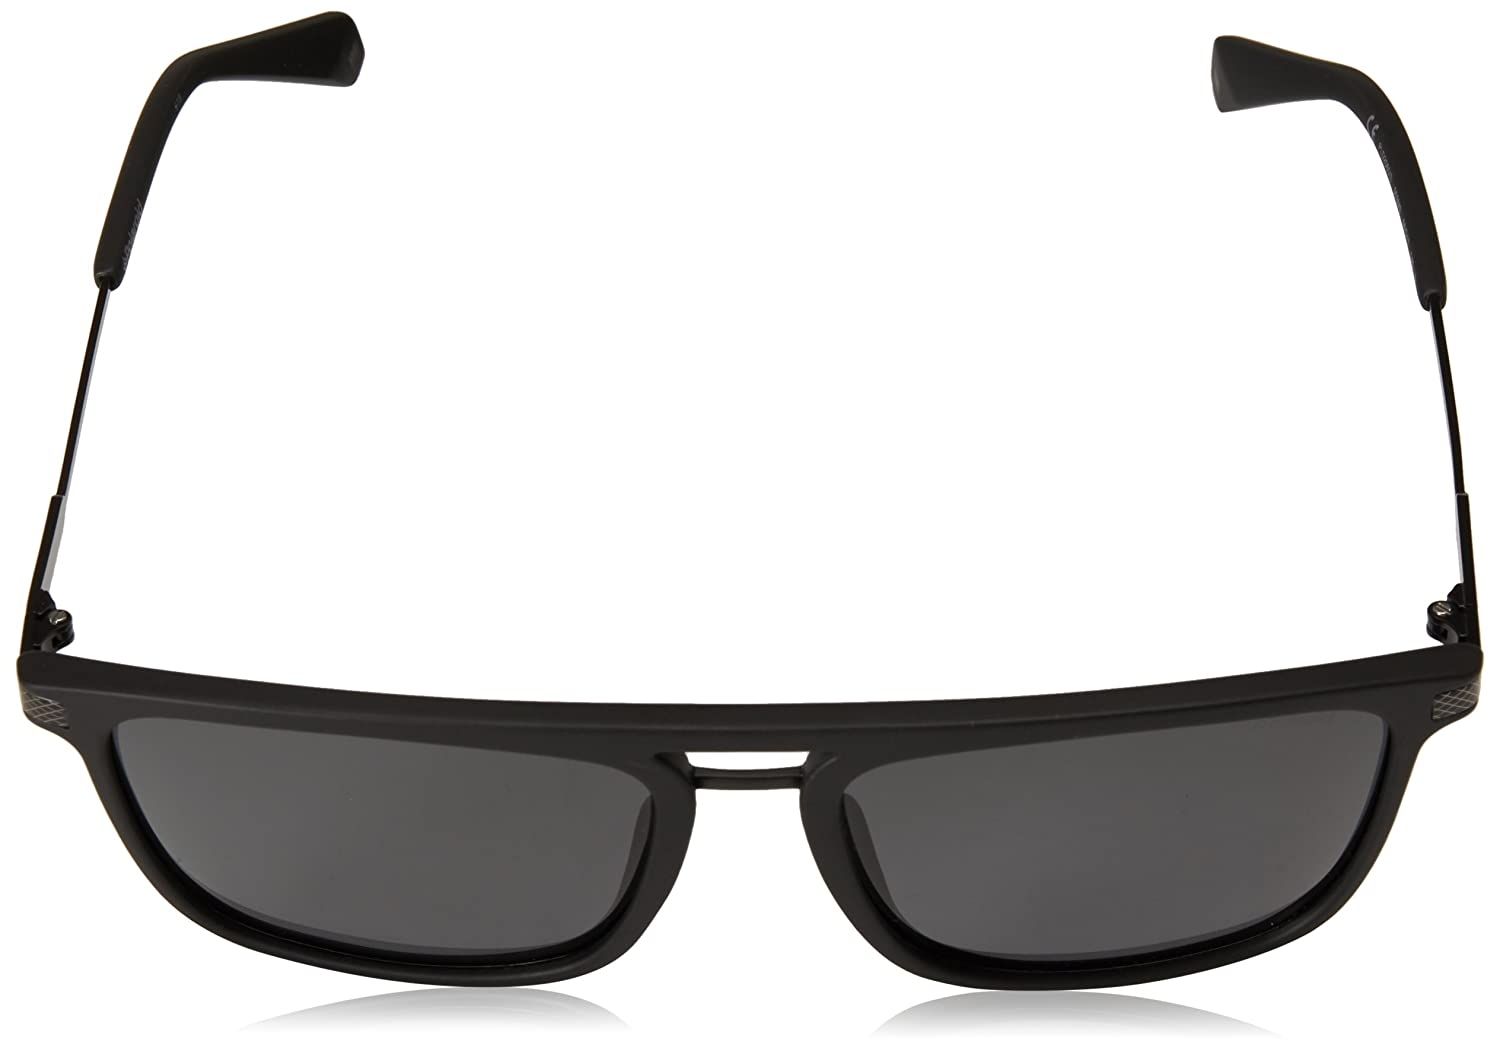 0c5235496247 Amazon.com  Polaroid Sunglasses PLD 2060 s Polarized Rectangular Sunglasses